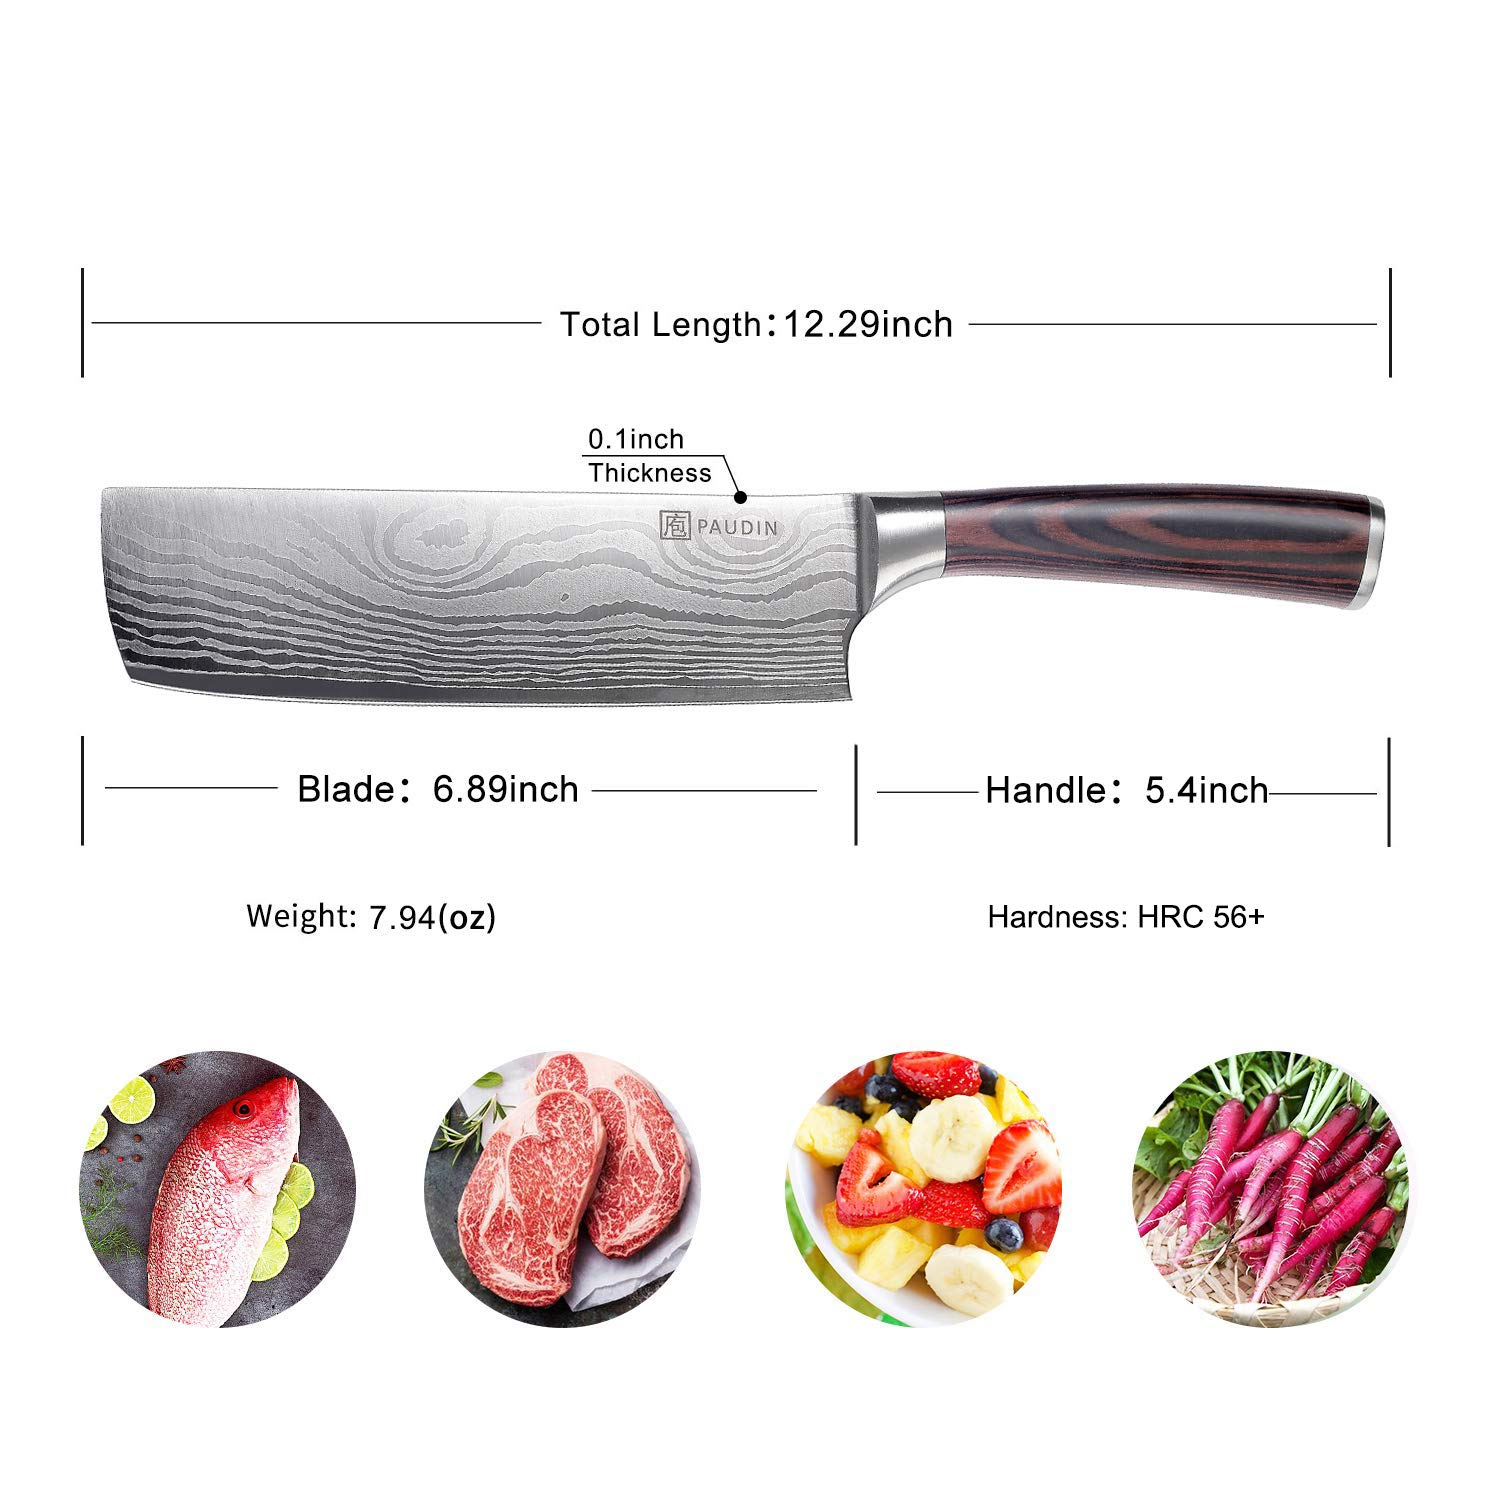 Cleaver Knife - PAUDIN 7 inch Chinese Vegetable Cleaver Kitchen Knife N6 German High Carbon Stainless Steel Meat Cleaver Knife by PAUDIN (Image #7)